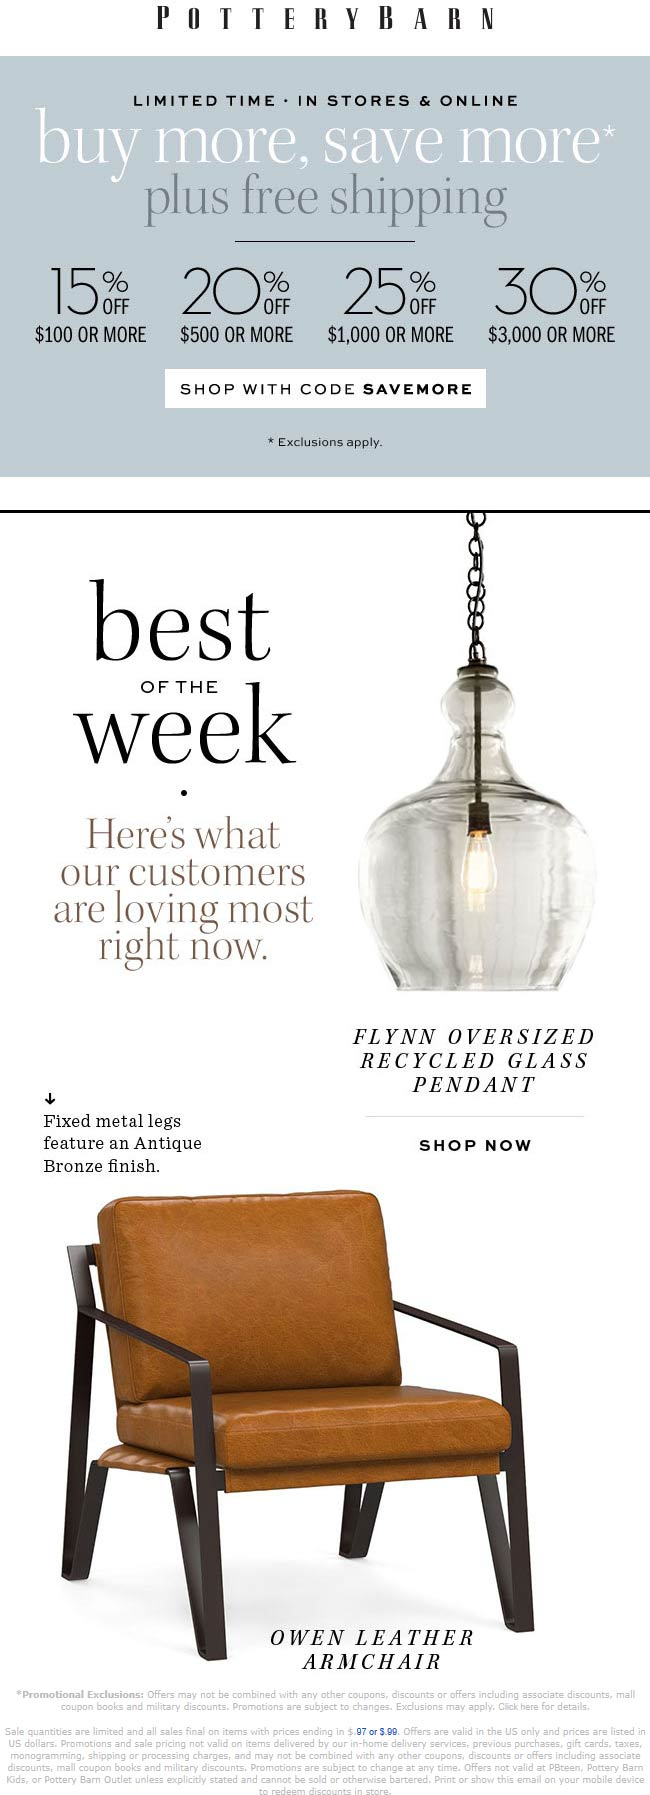 Pottery Barn Coupon July 2019 15-30% off at Pottery Barn, or online via promo code SAVEMORE